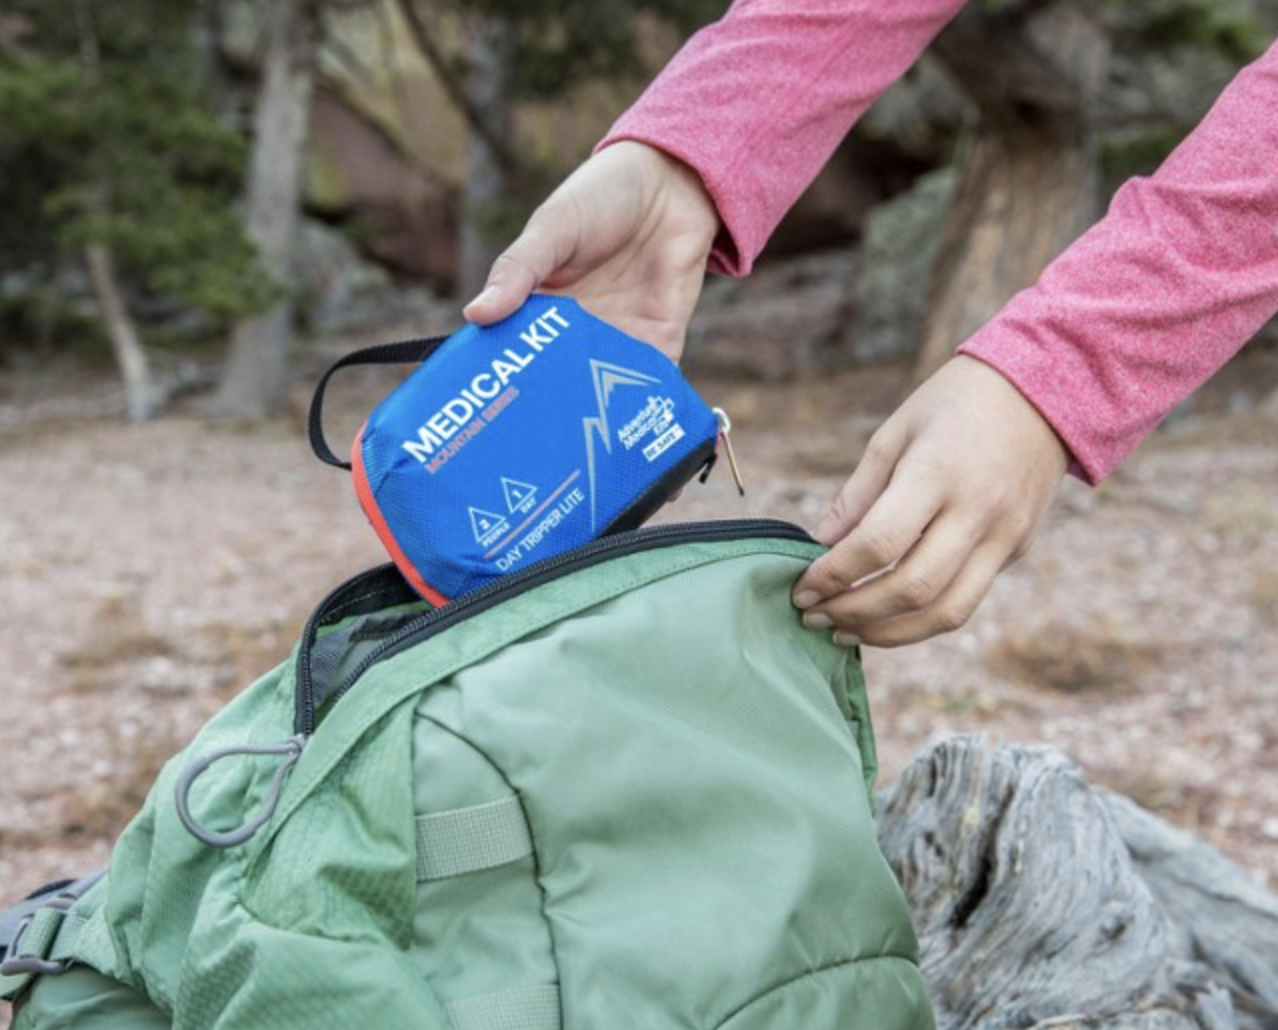 hands reaching for a small blue medical kit in a backpack